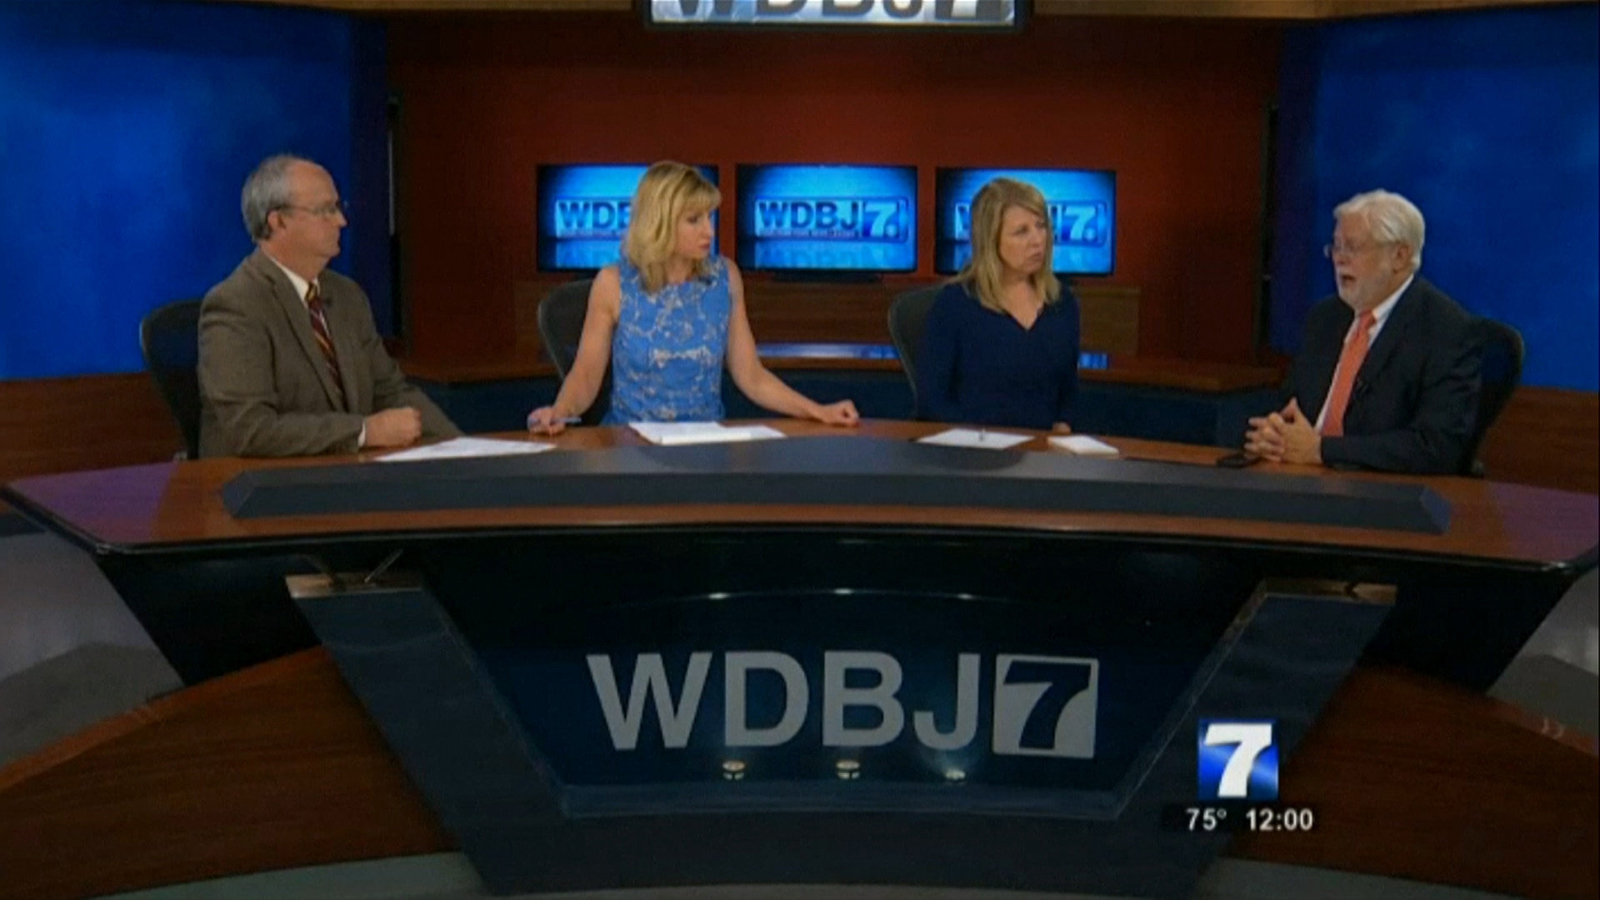 5 years ago today, the Roanoke based station WDBJ was changed forever after two reporters died in an on-air shooting. What's the news room like today?